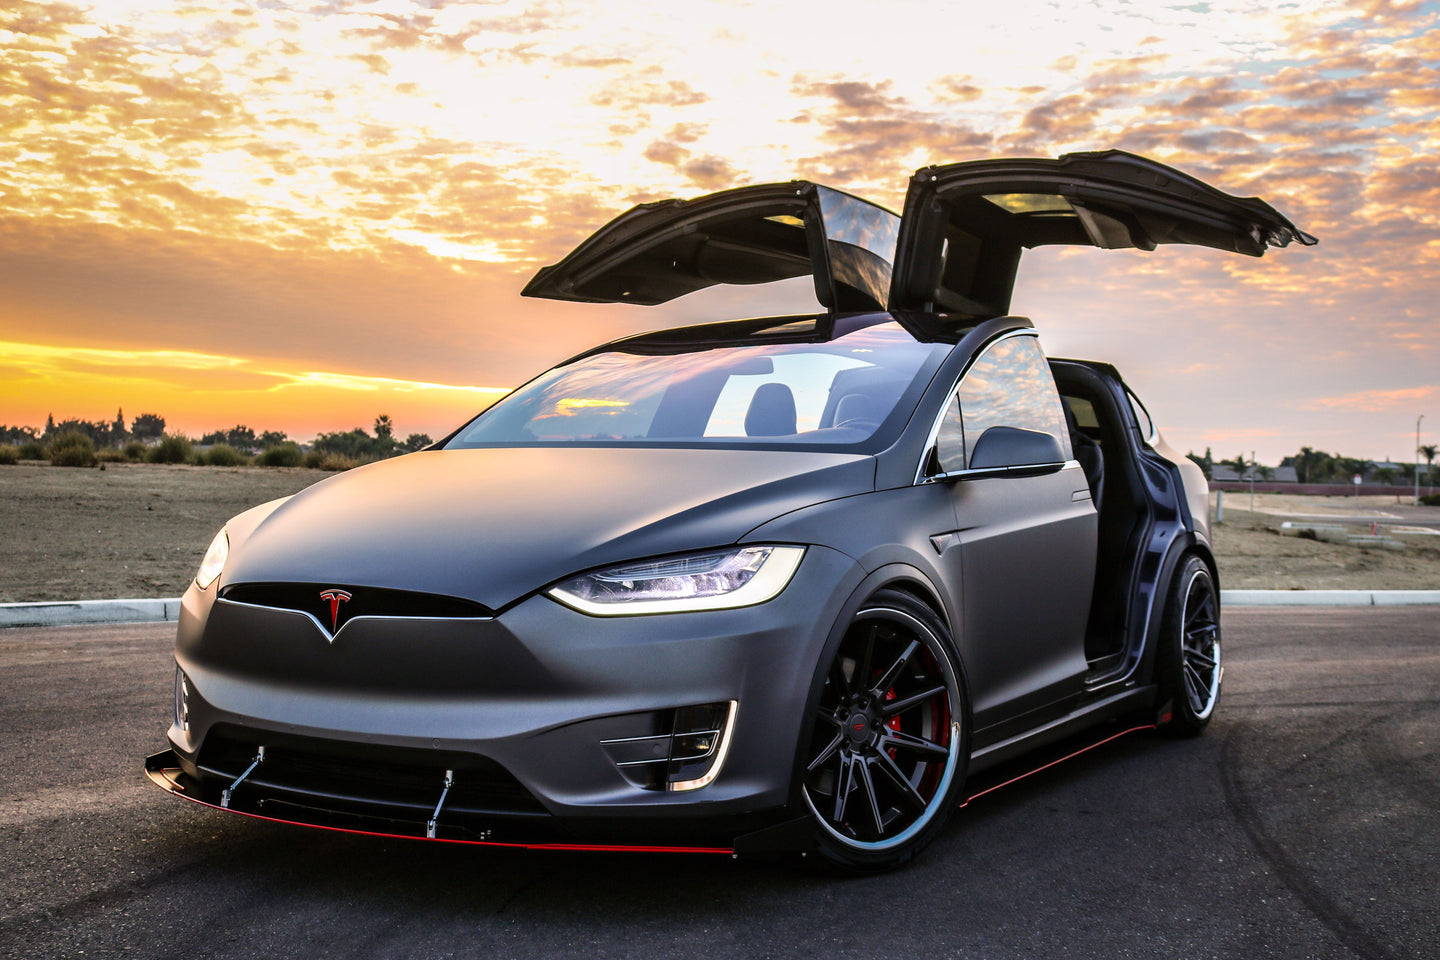 Tesla Body Kits | Splitters, Side Skirts, Rear Diffuser, Canards, Wings, Spoilers